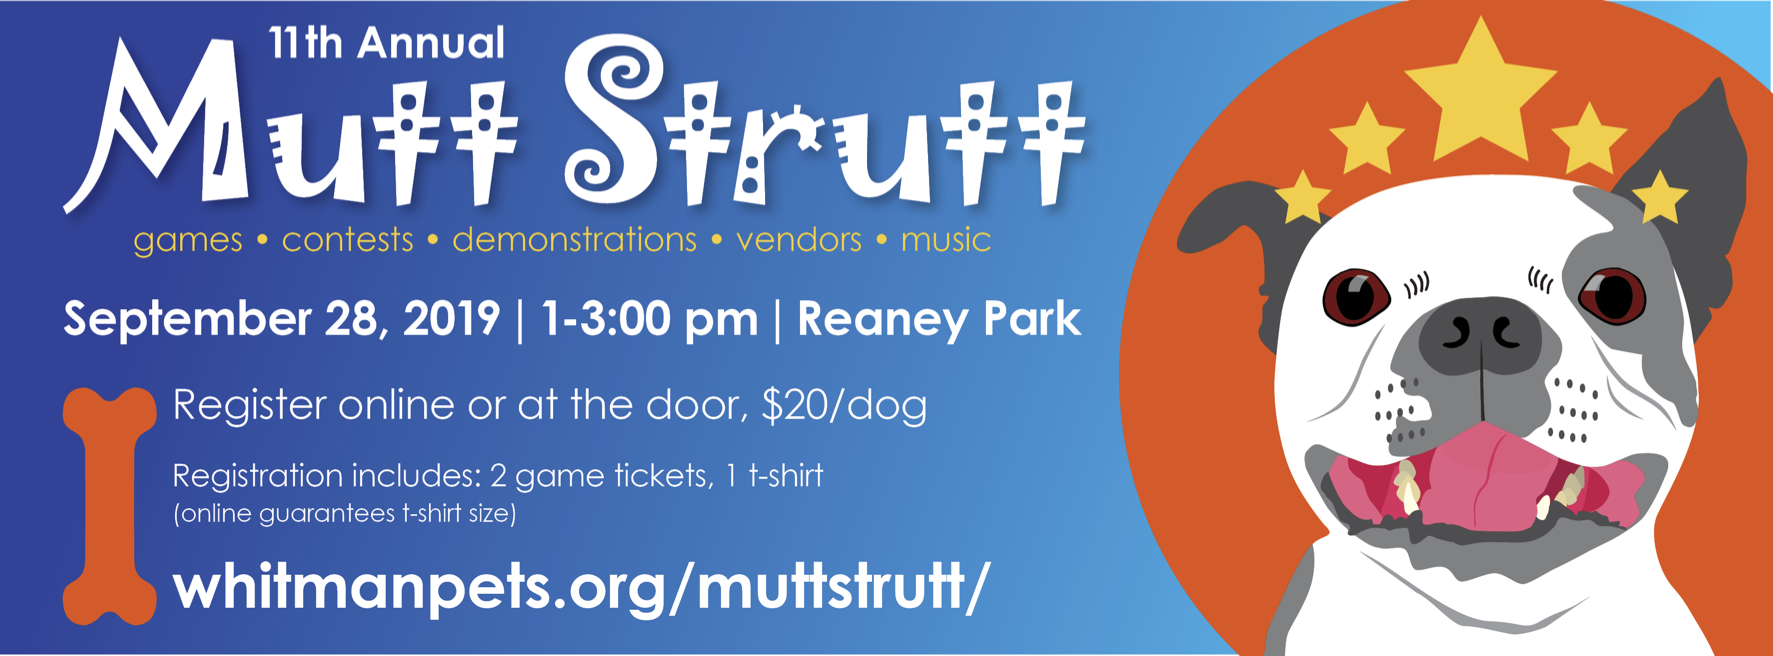 11th Annual Mutt Strutt